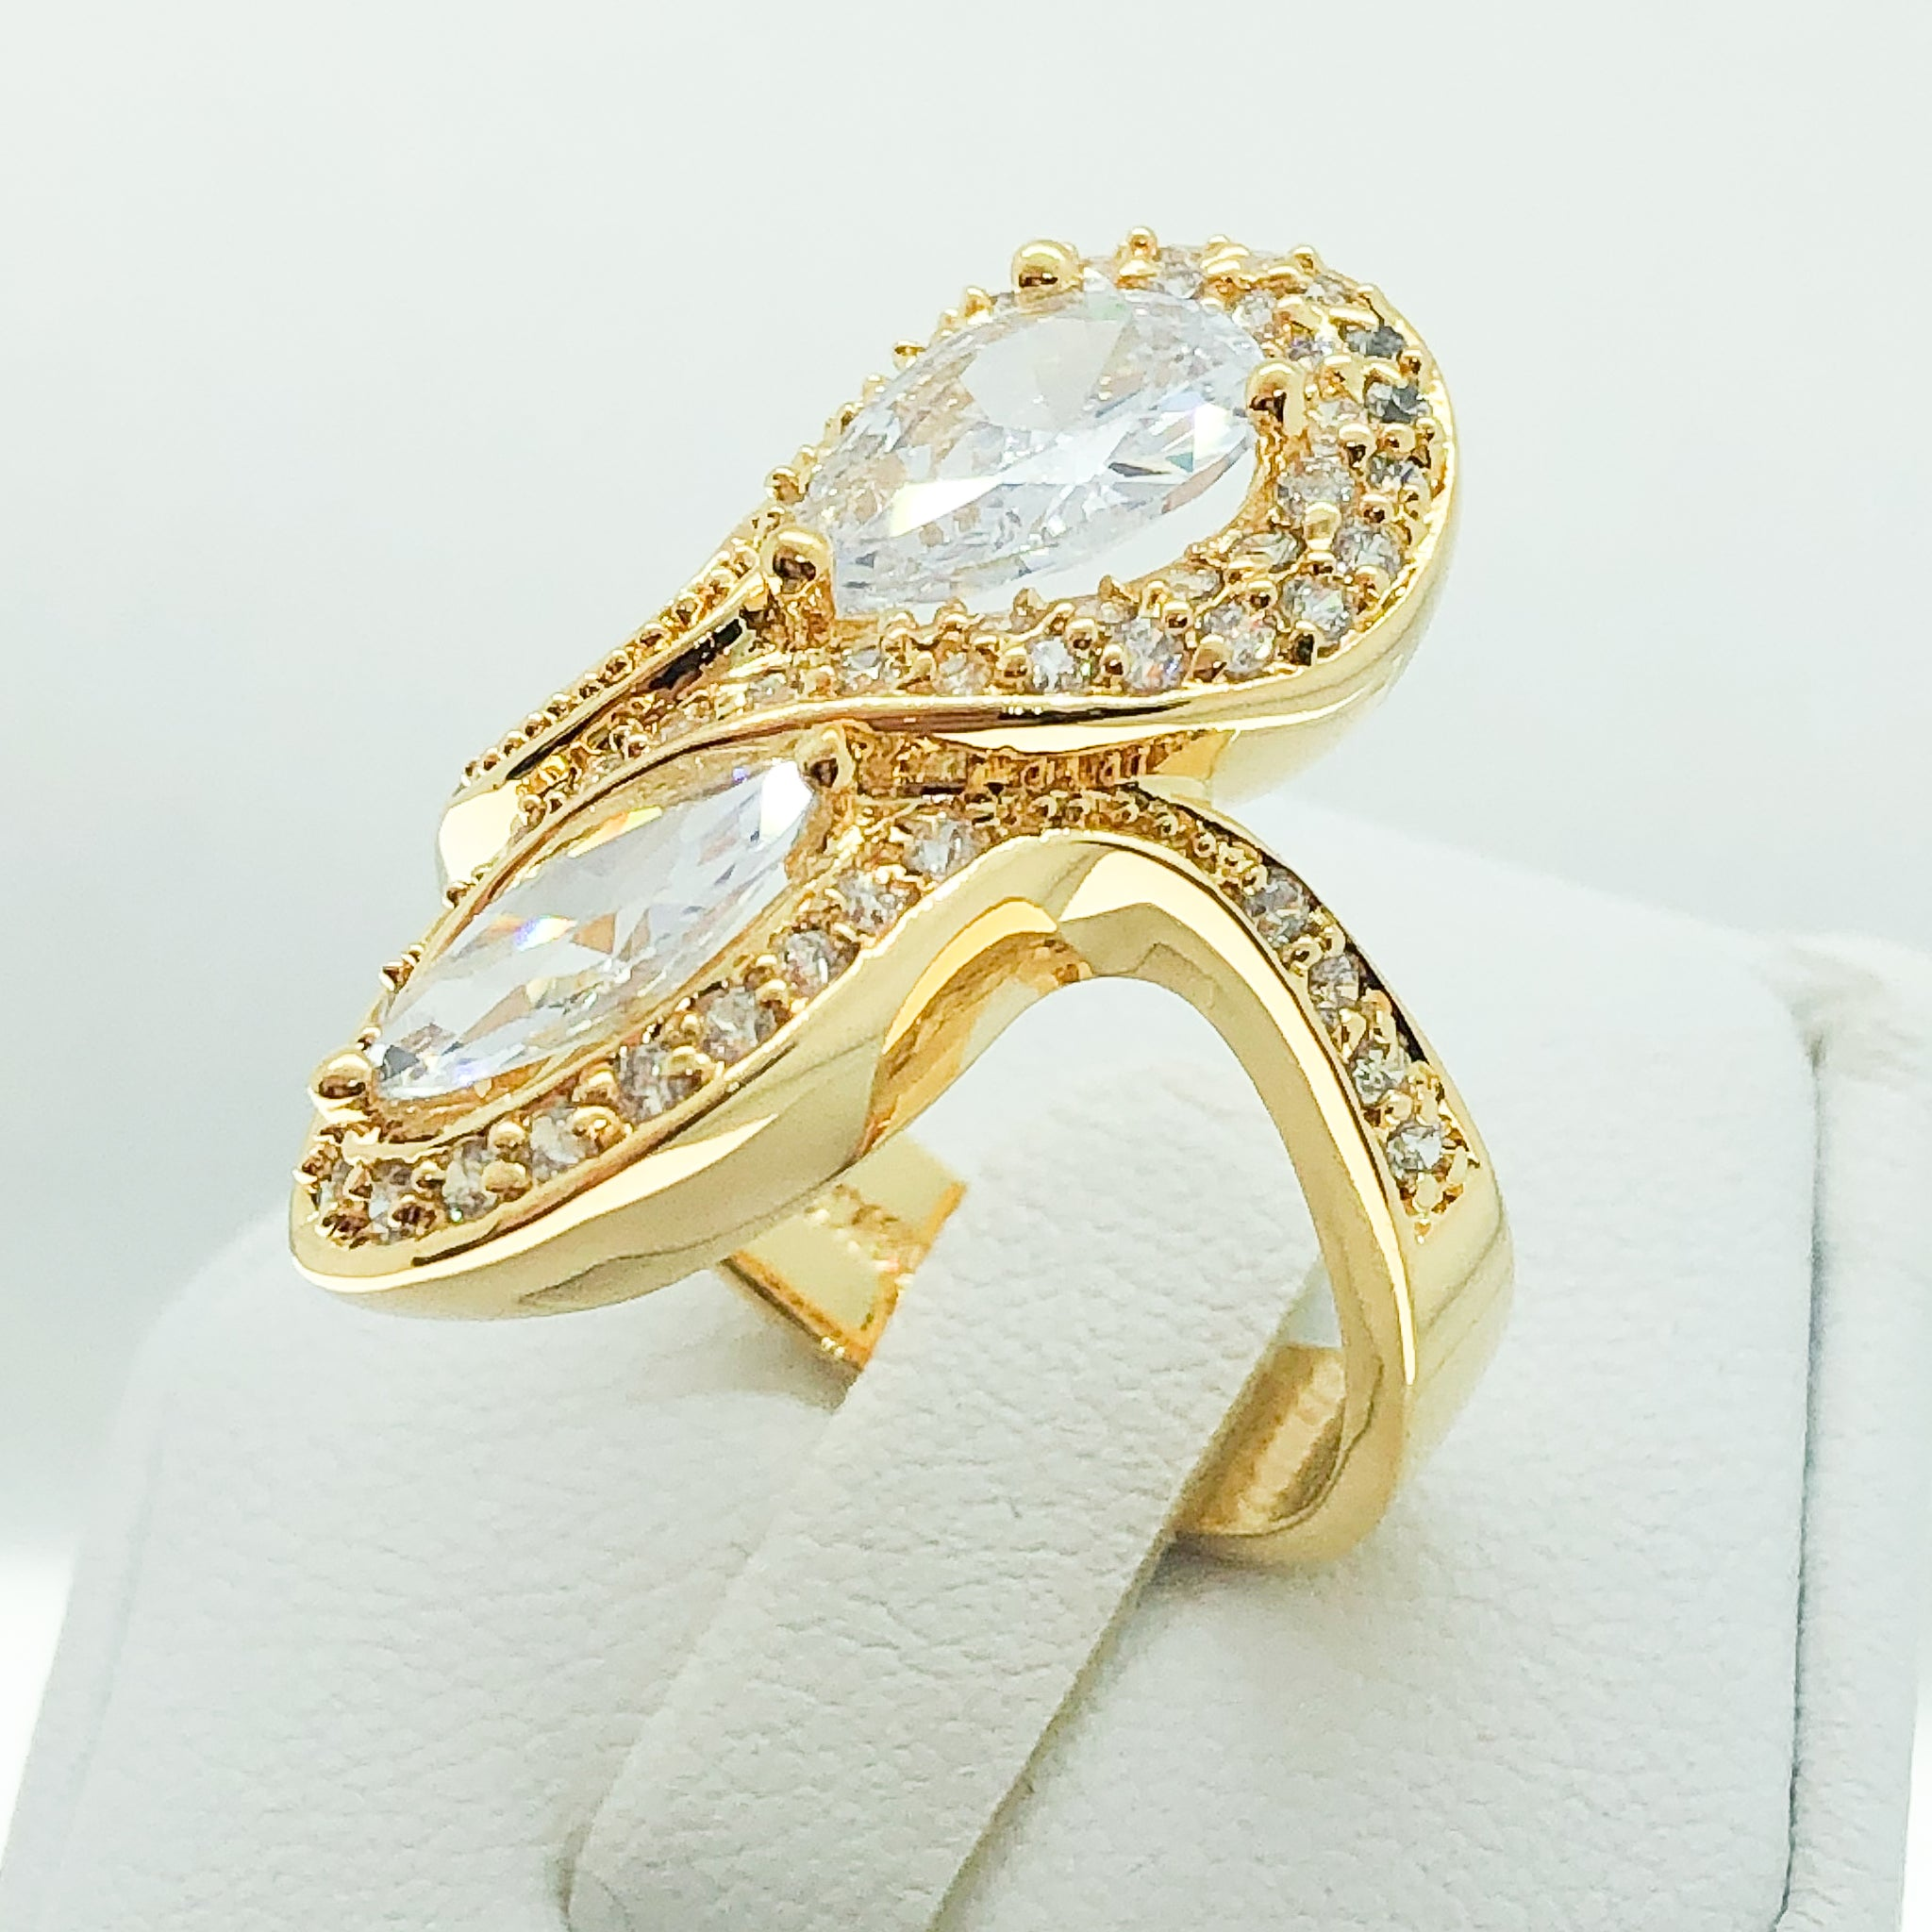 ID:R3533 Women Fashion Jewelry 18K Yellow Gold GF Lovely Cluster Diamonique Cocktail Ring Statement Anniversary Gift